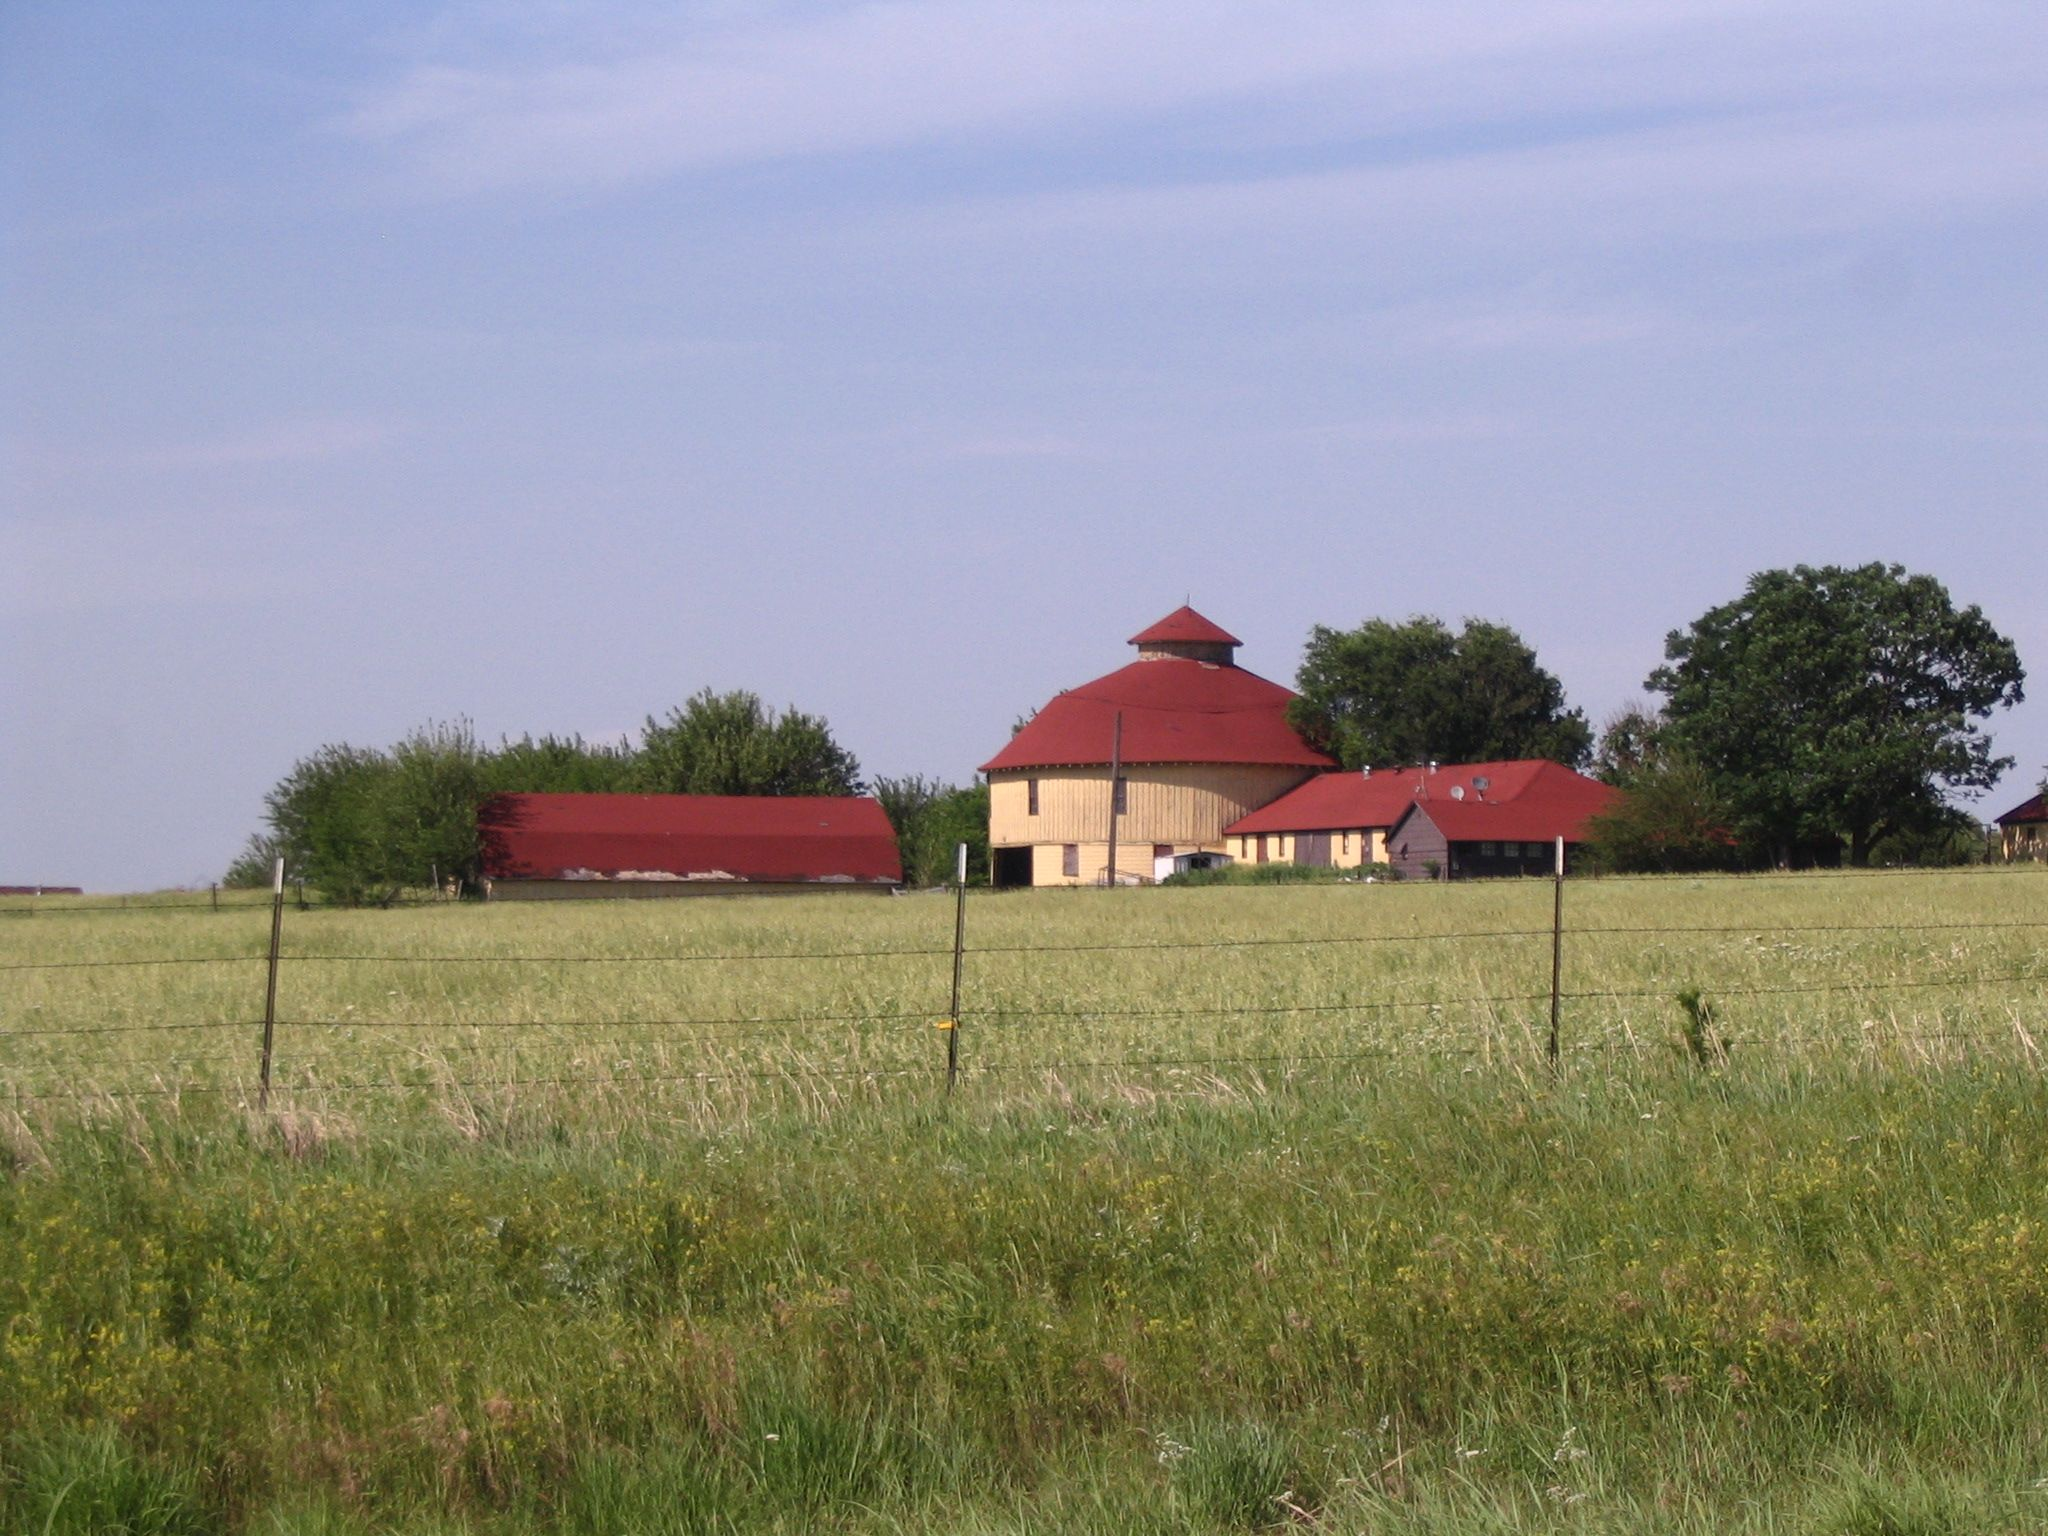 The Round Barn Ranch, Derby, Kansas, is home to the historic Round Barn built by renowned architect, Benton Steele in 1910.